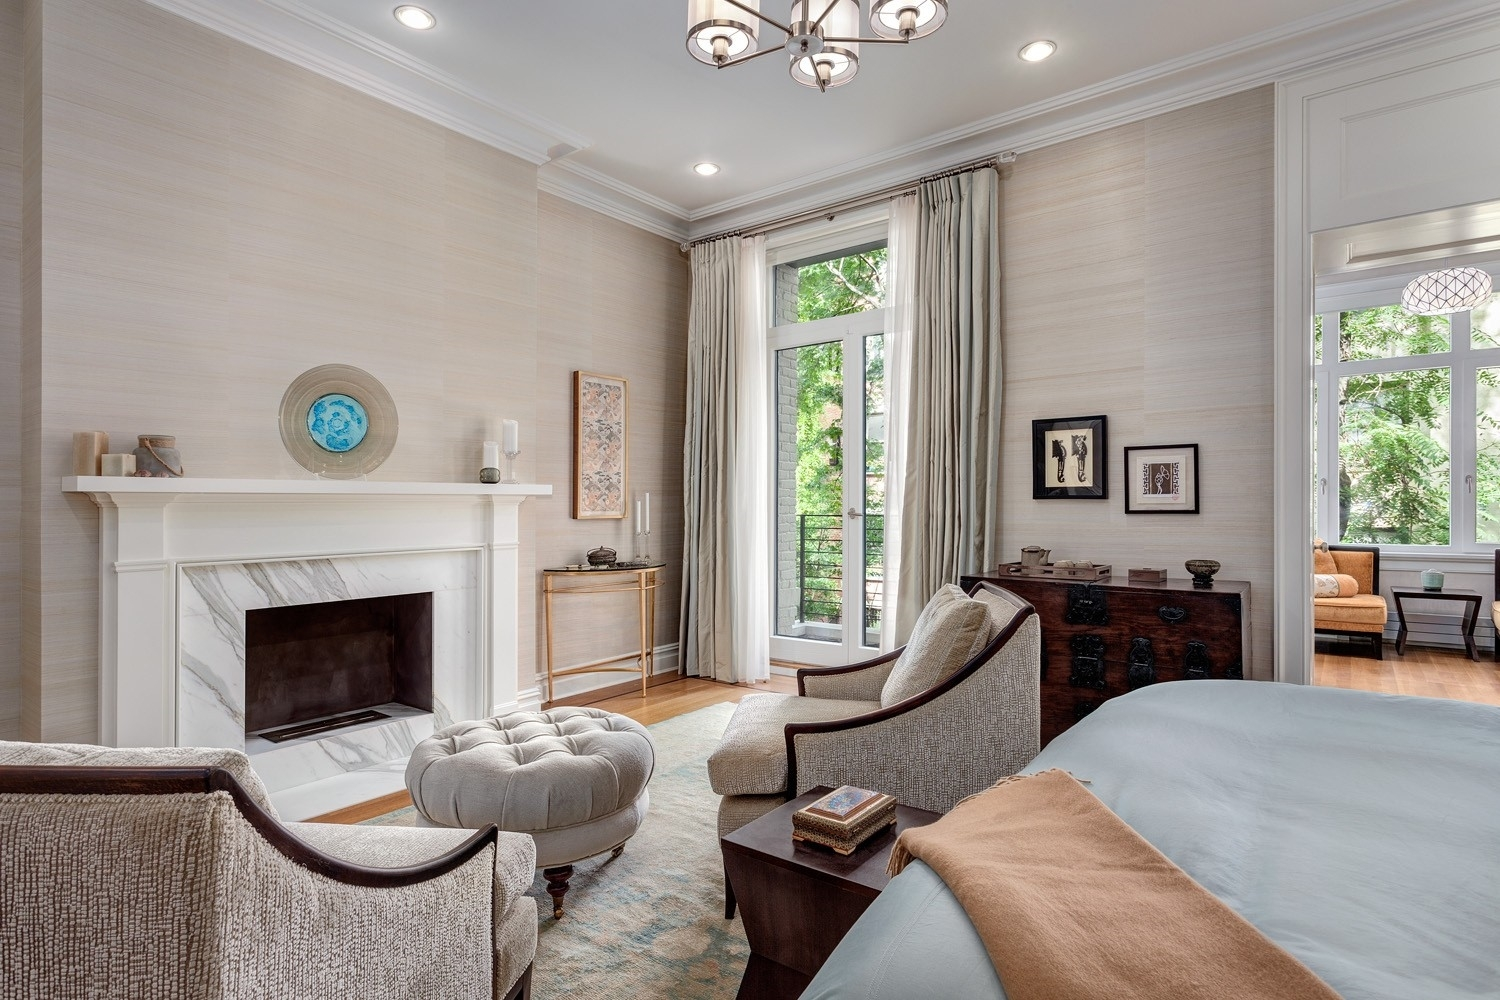 11. Single Family Townhouse for Sale at Upper West Side, New York, NY 10024